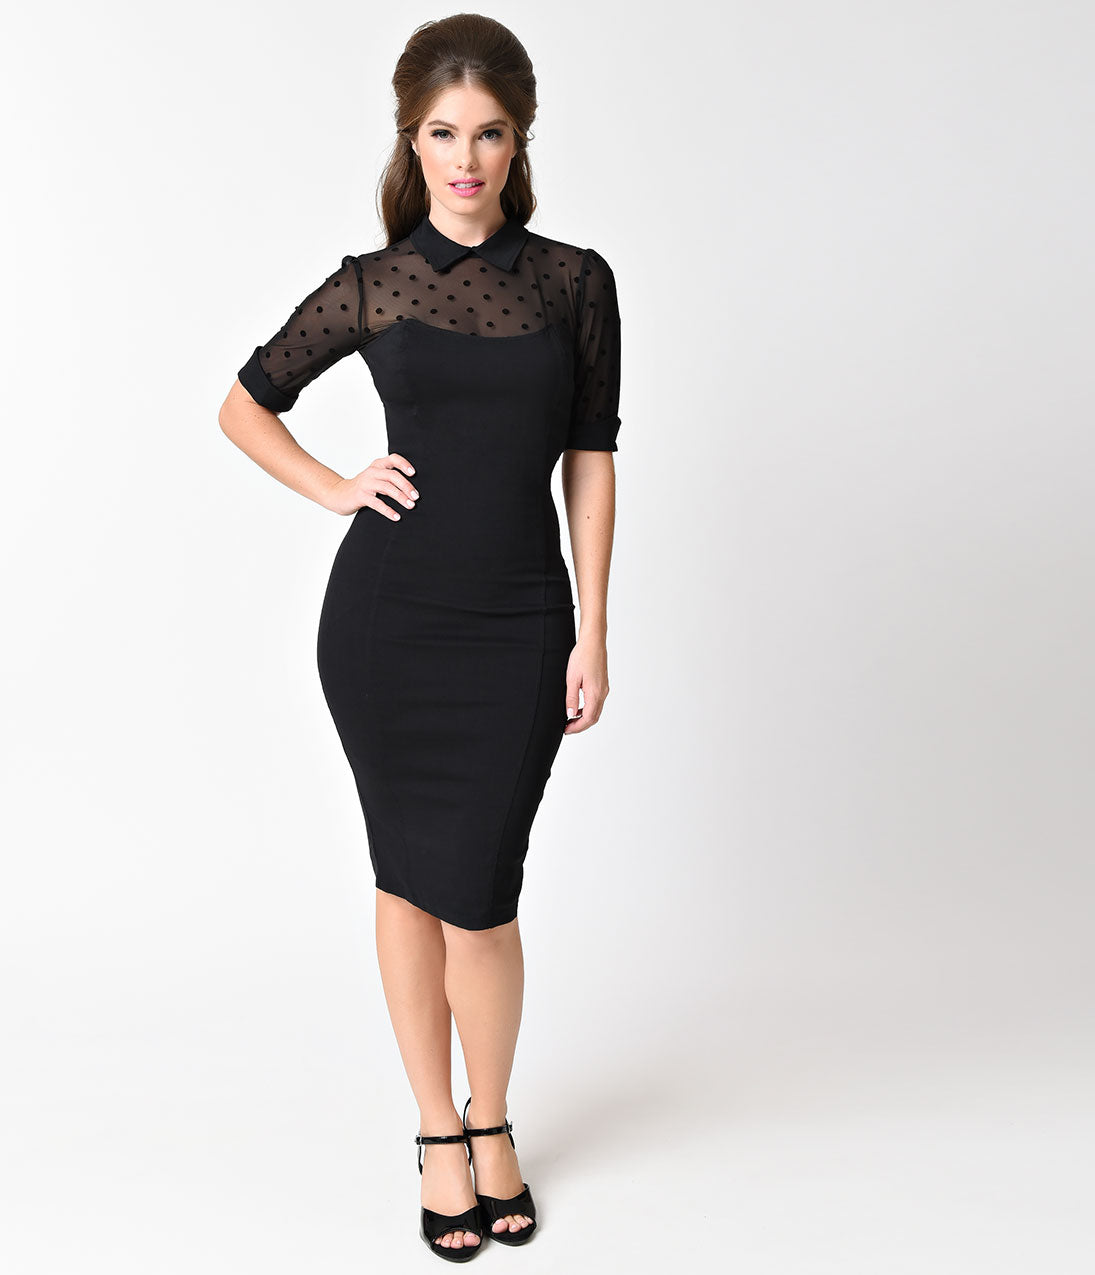 Rockabilly Dresses | Rockabilly Clothing | Viva Las Vegas Collectif Black  Sheer Swiss Dot Short Sleeve Wednesday Wiggle Dress $78.00 AT vintagedancer.com